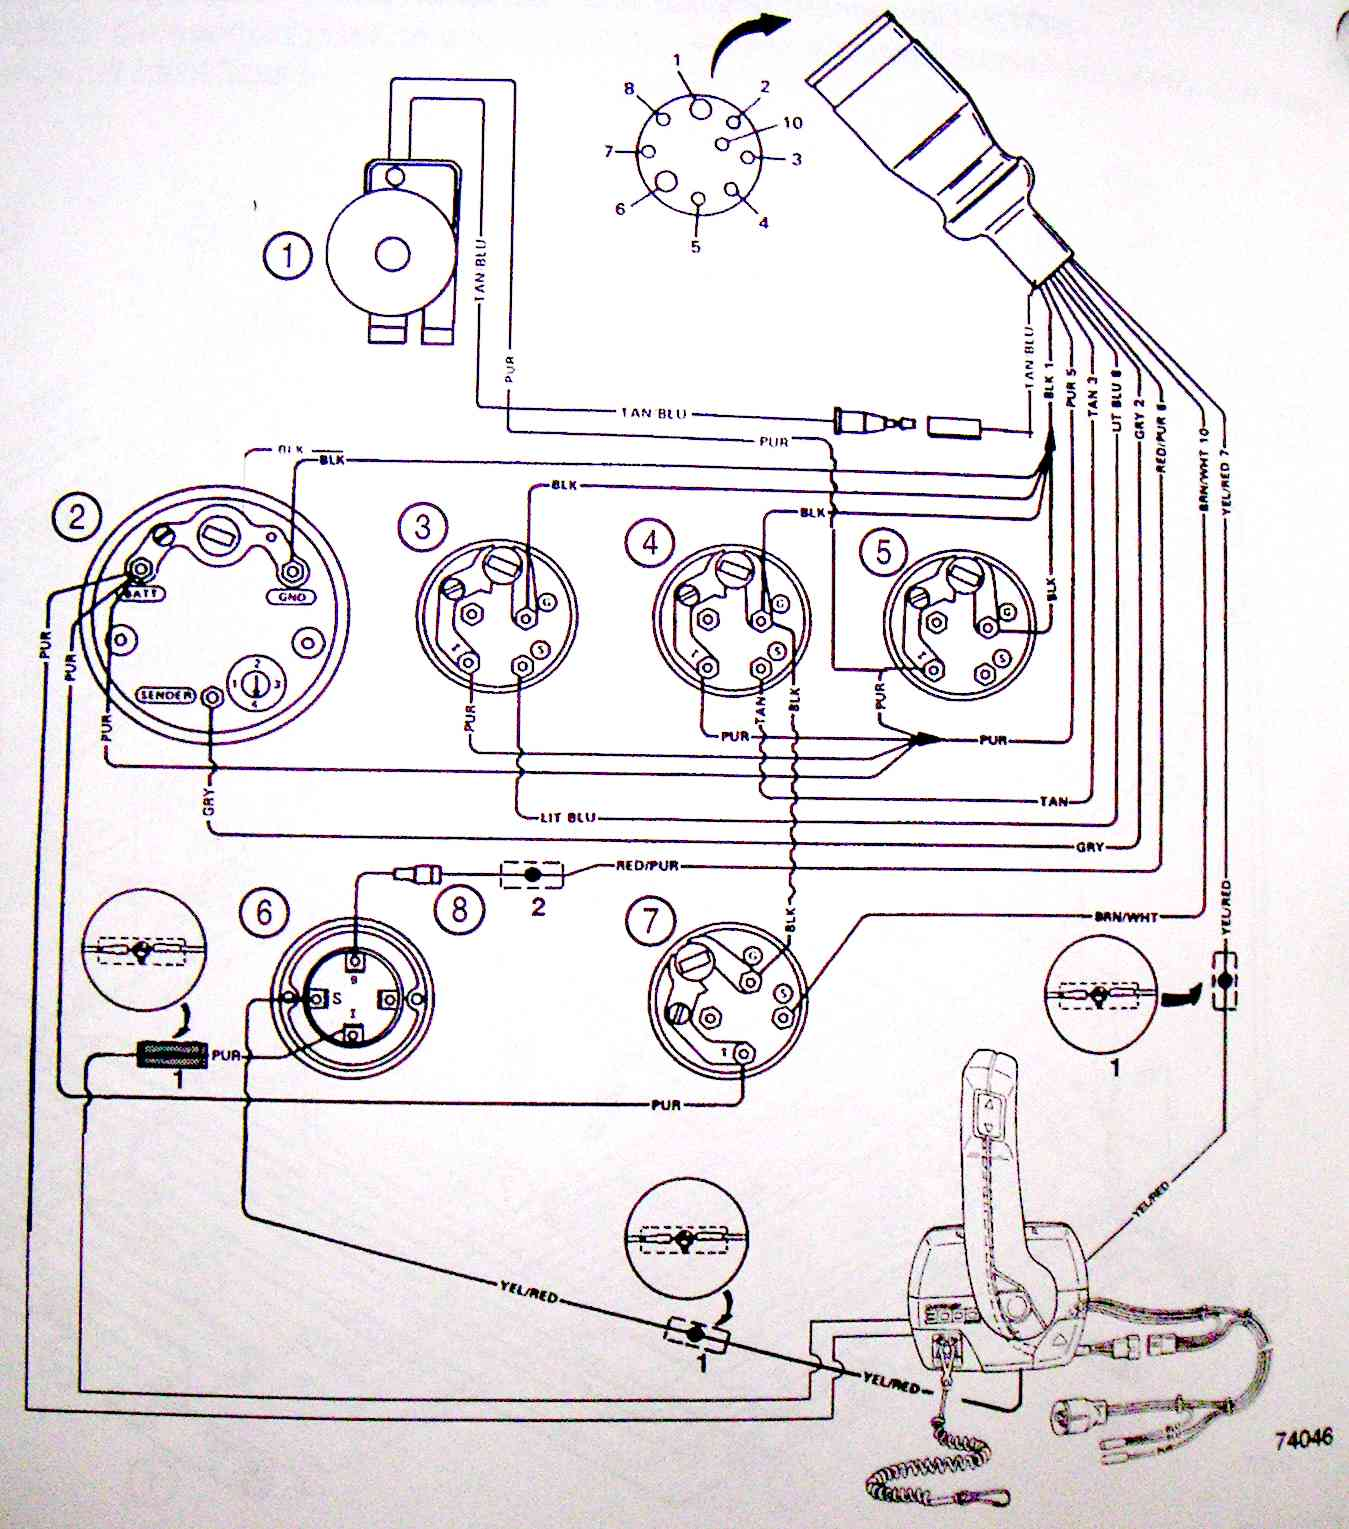 BoatHarness74046 yamaha outboard motor wiring diagrams the wiring diagram volvo penta wiring harness diagram at webbmarketing.co